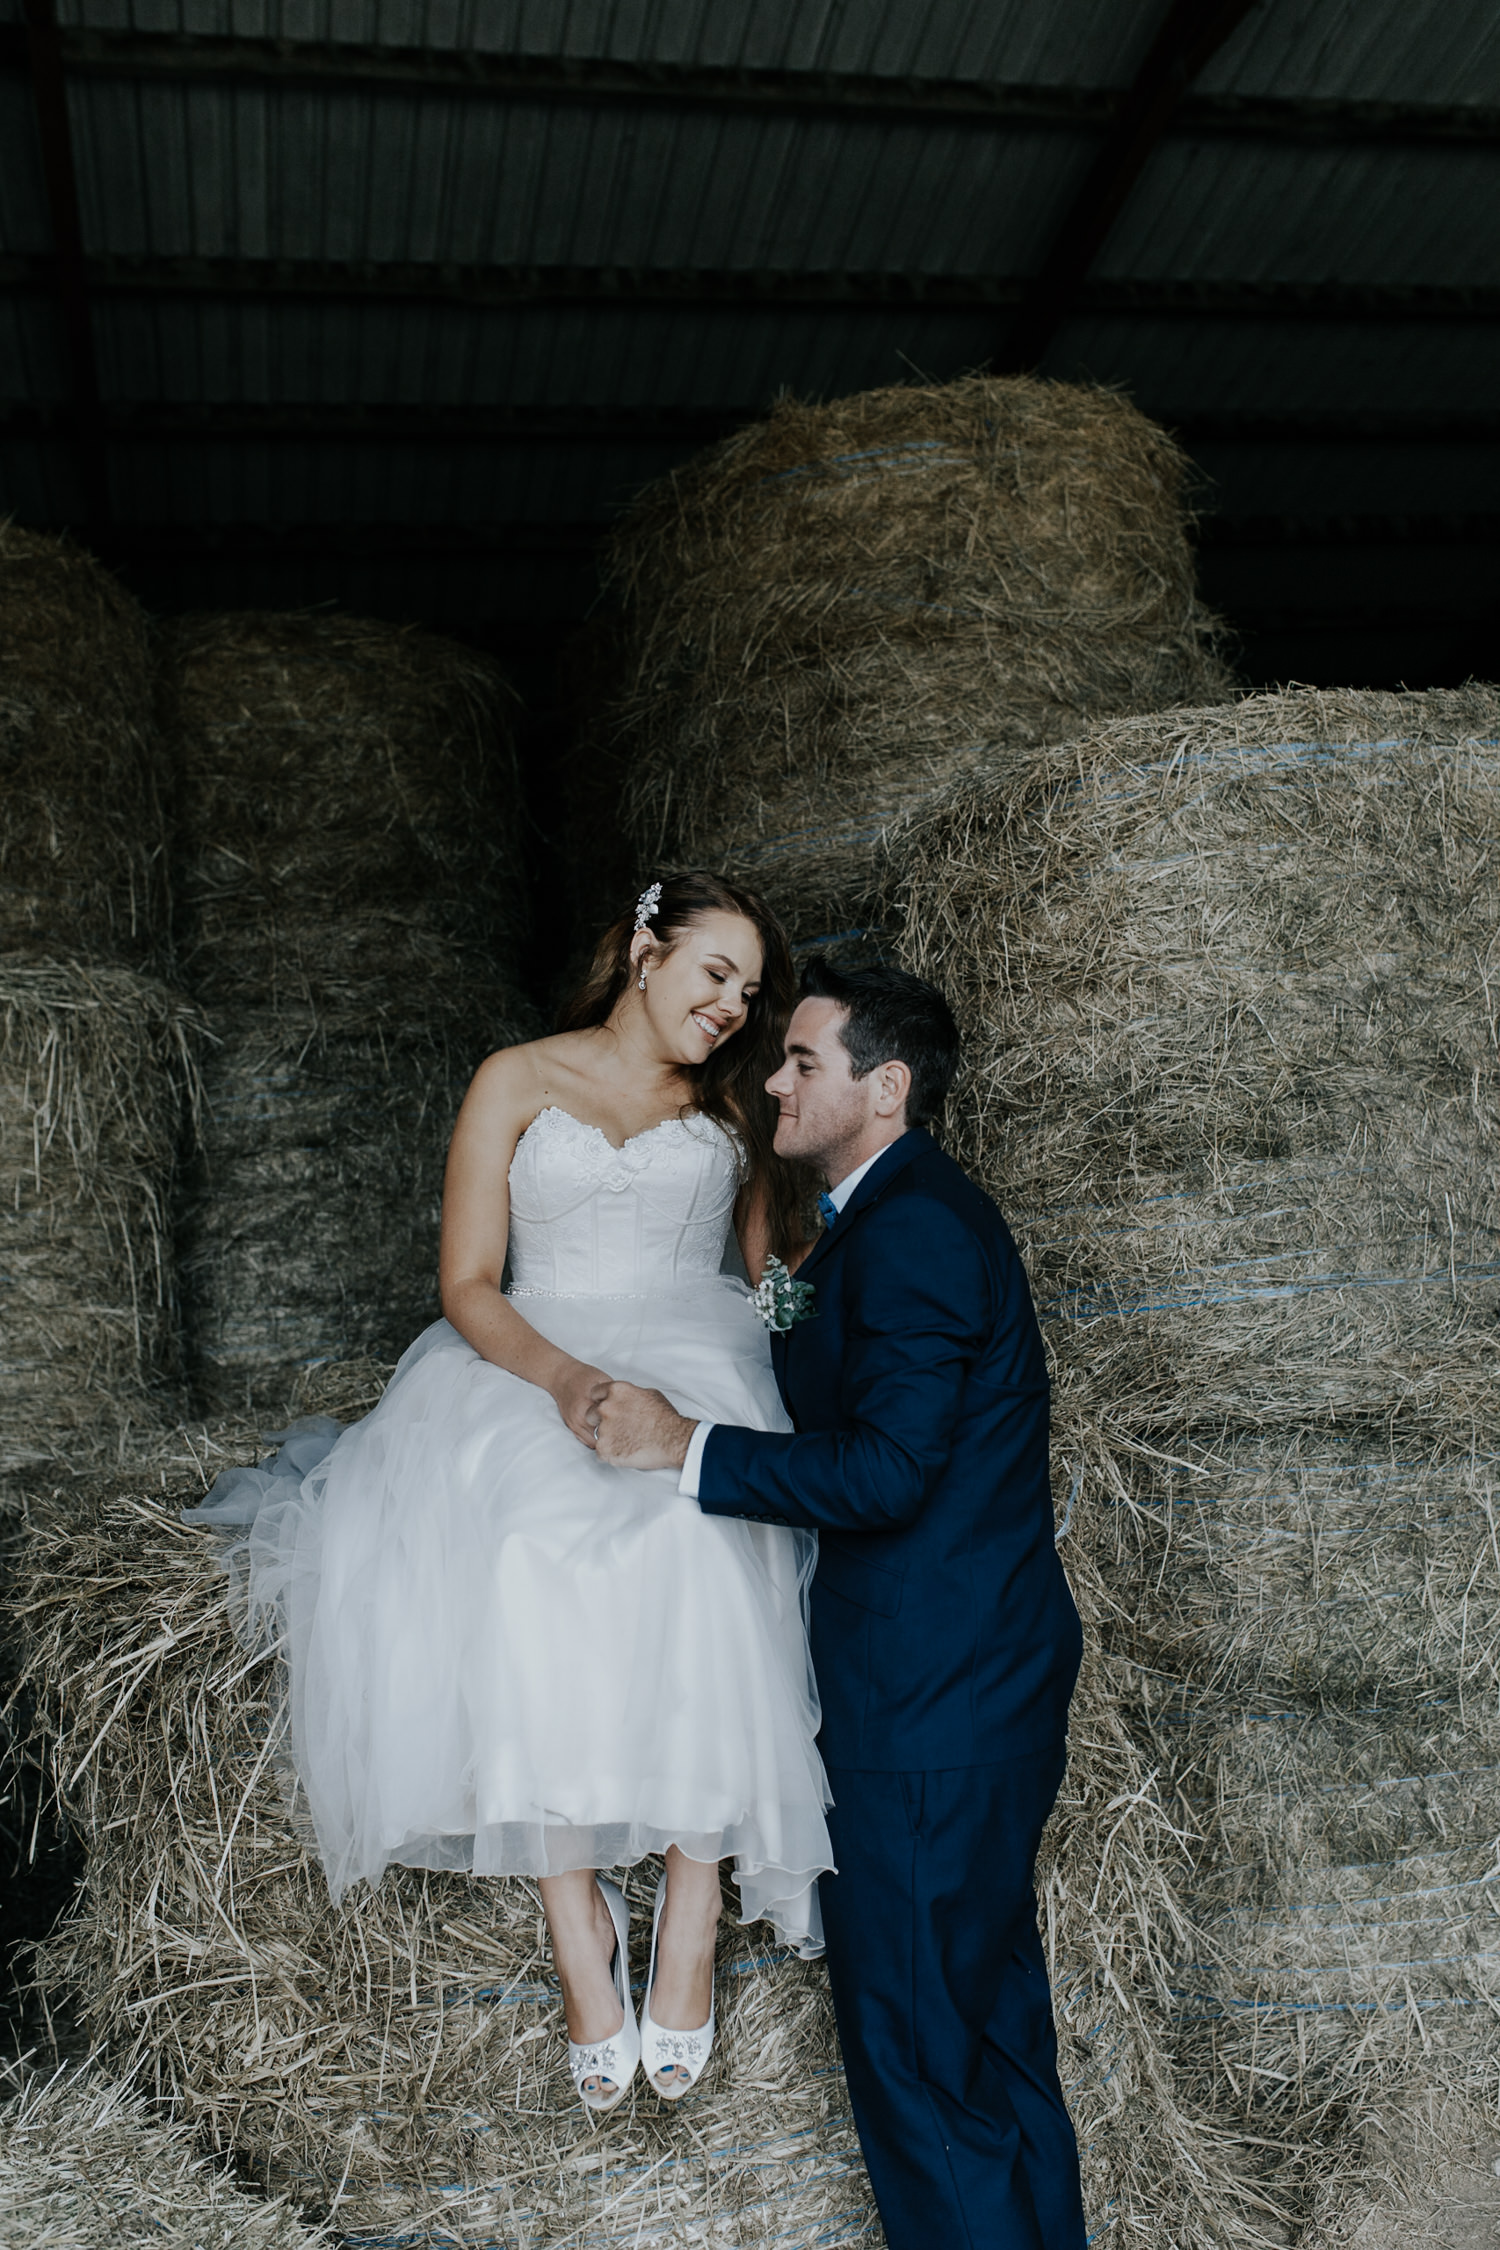 Rustic Bridal Portraits Oaklands Pambula South Coast Wedding ceremony, Jenny Wu Straight No Chaser Photography